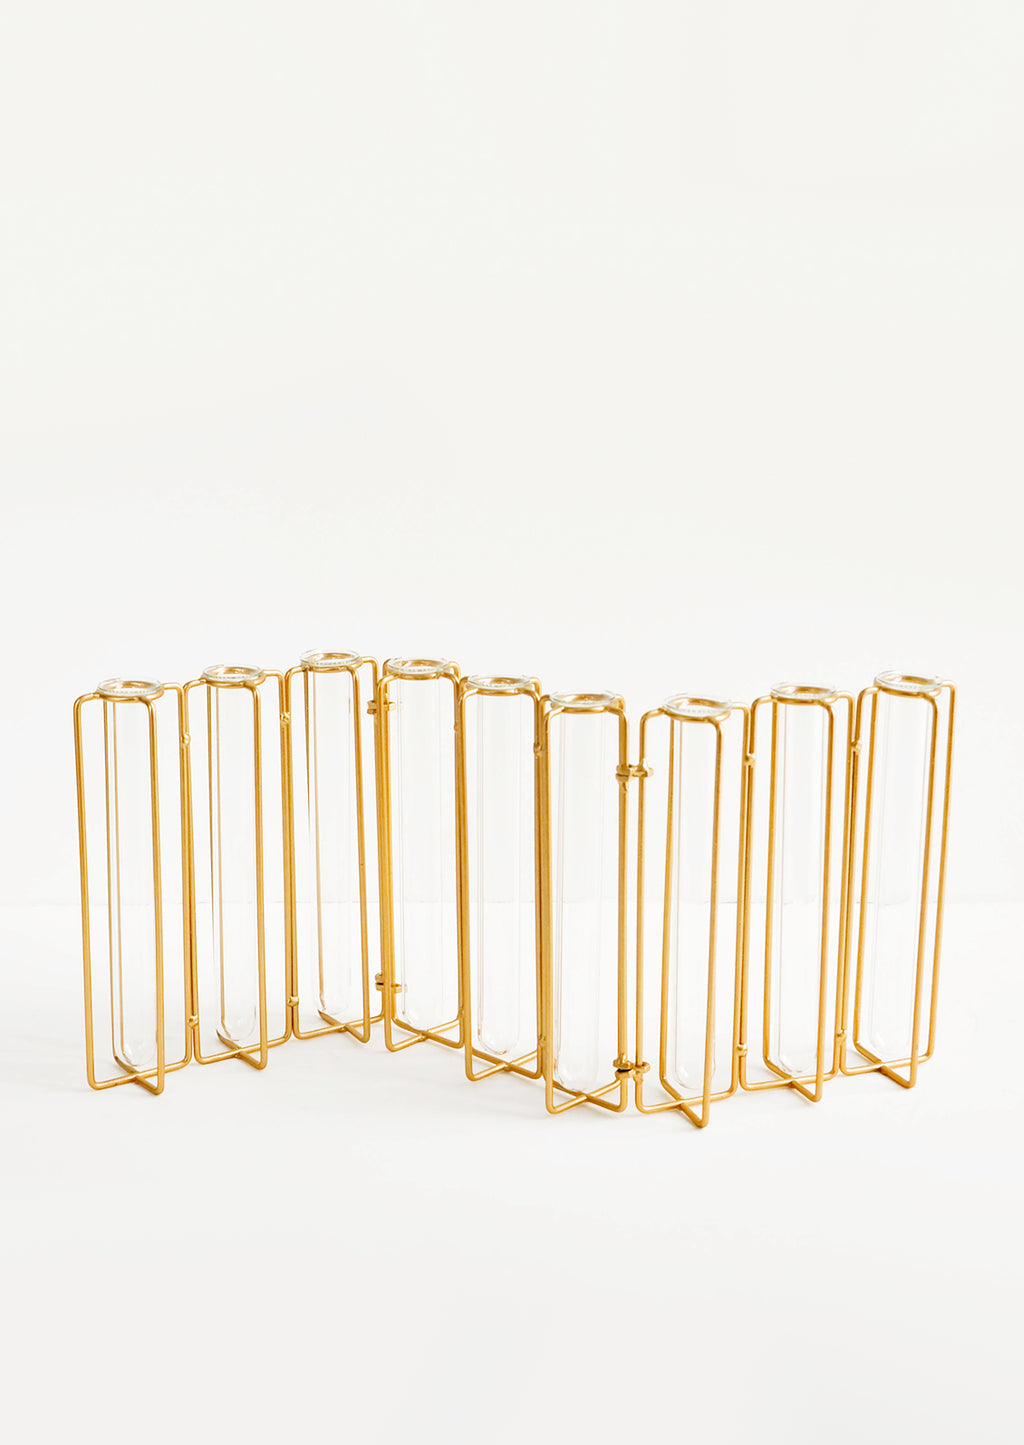 4: Multi-stem vase composed of nine glass vials side by side, resting inside individual compartments on a brass metal frame.